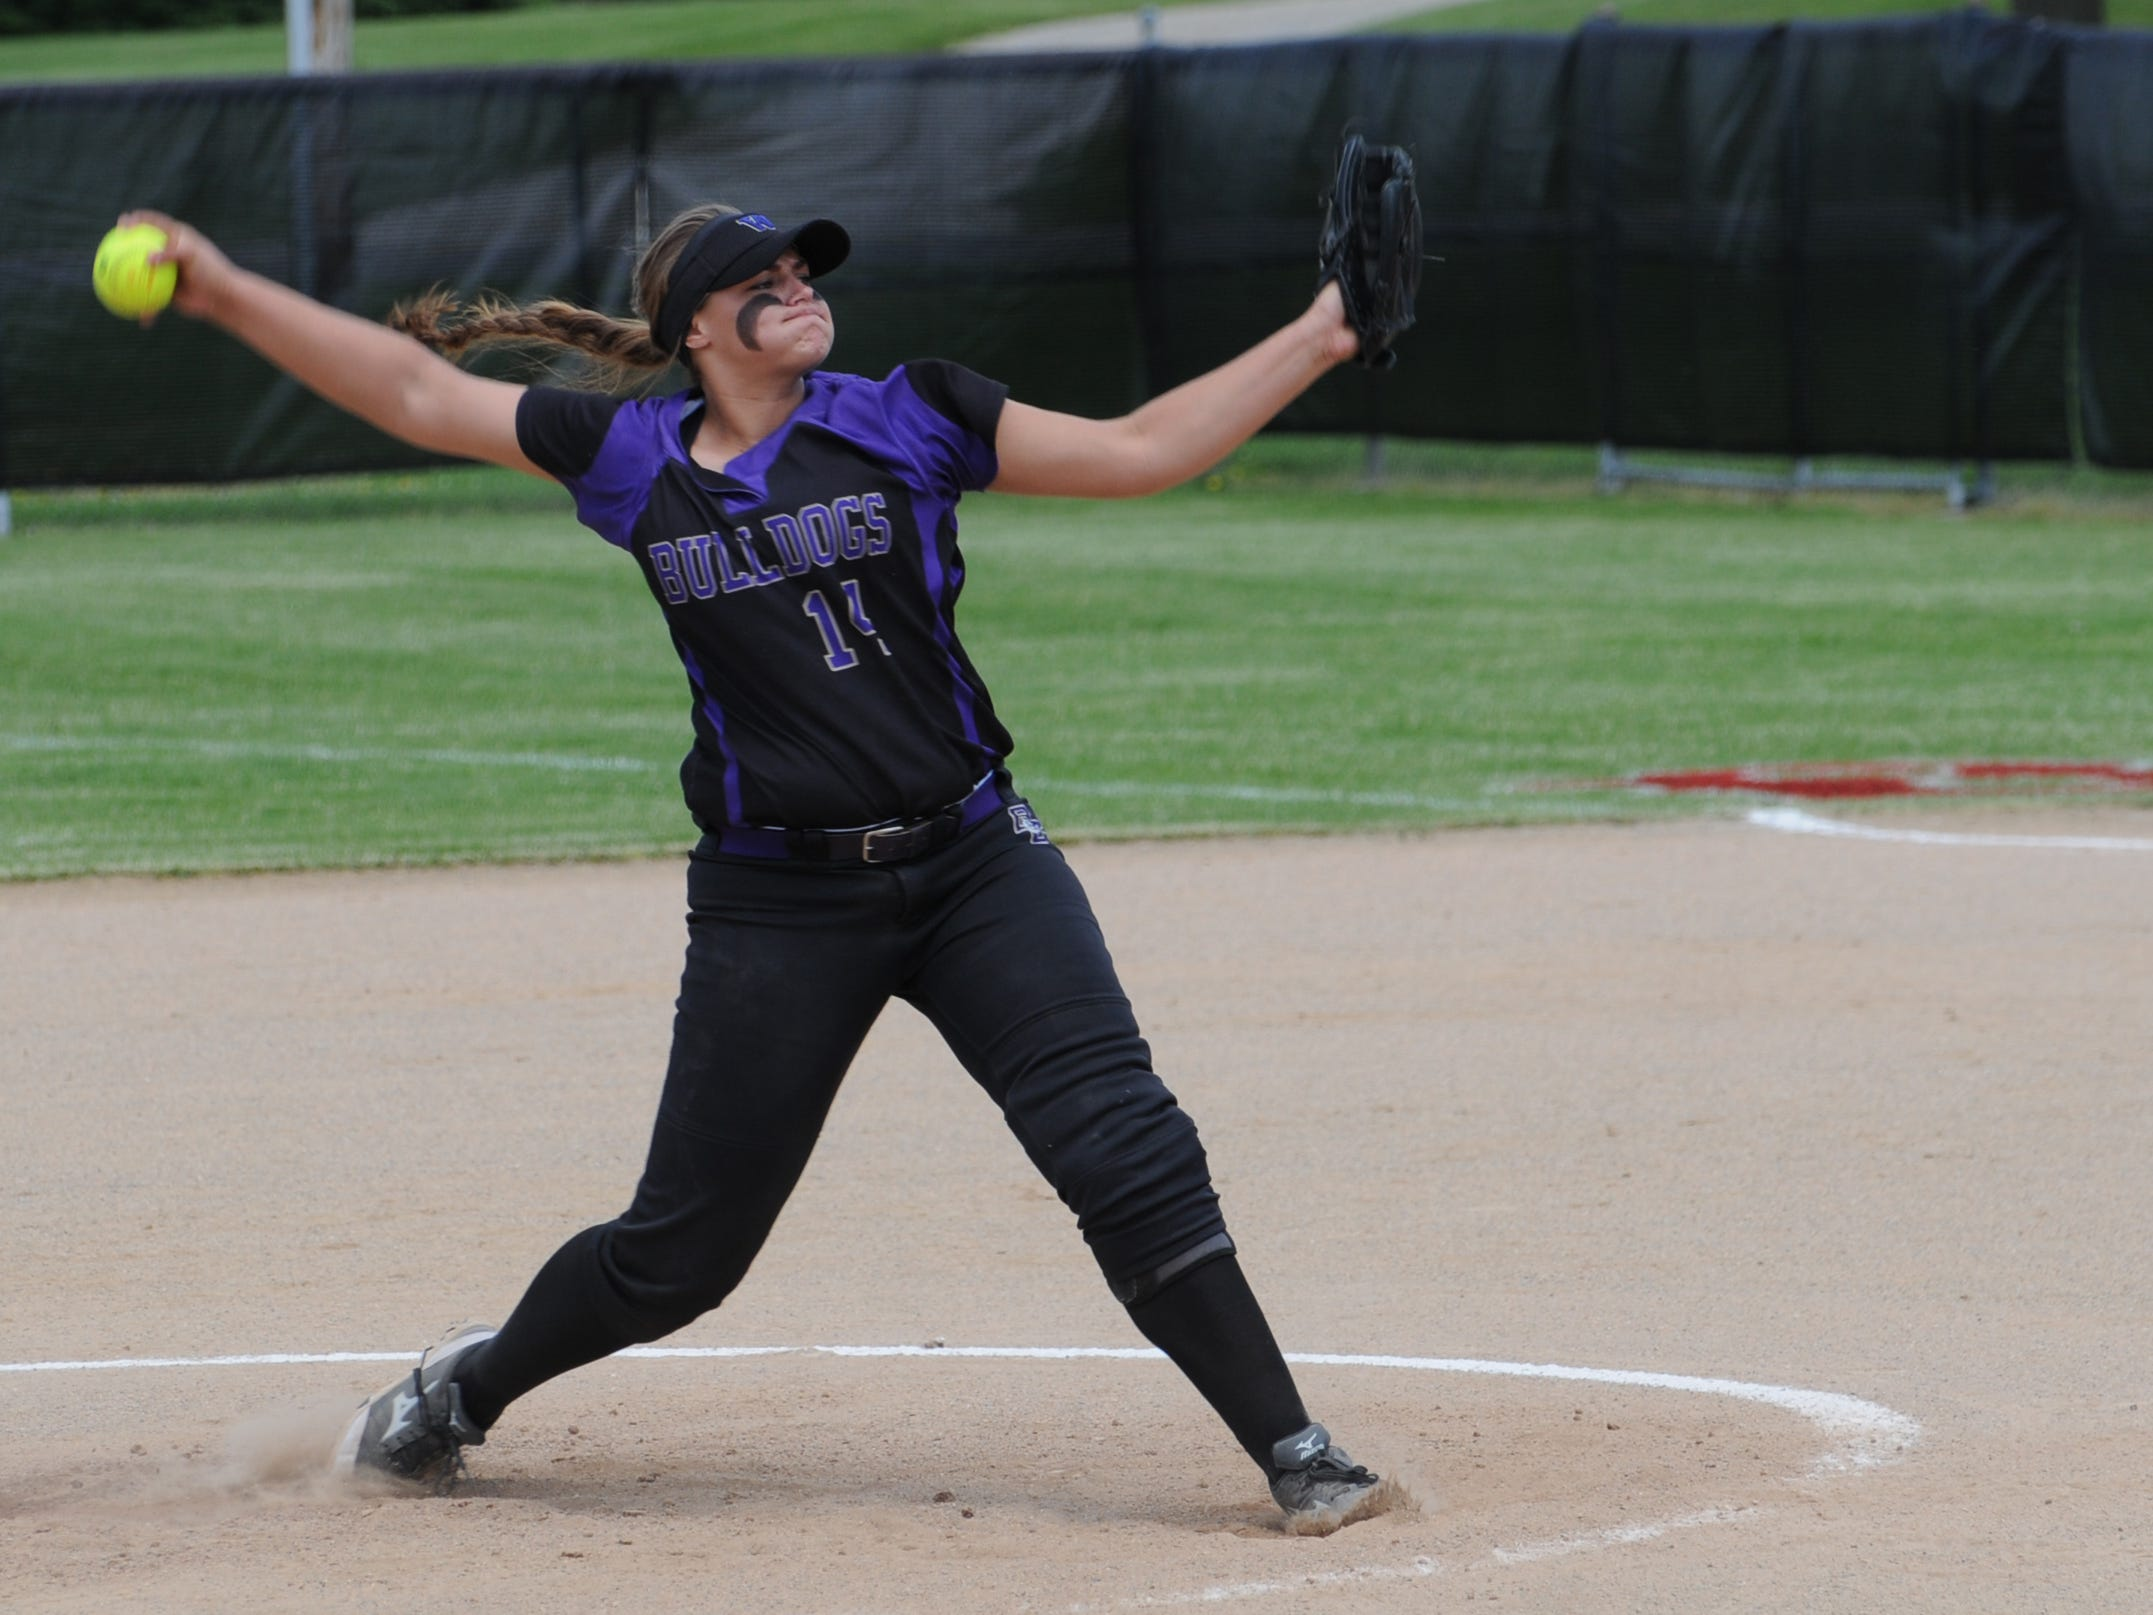 Bloom-Carroll senior pitcher Taran Alvelo returns as the top-rated high school pitcher in the country.